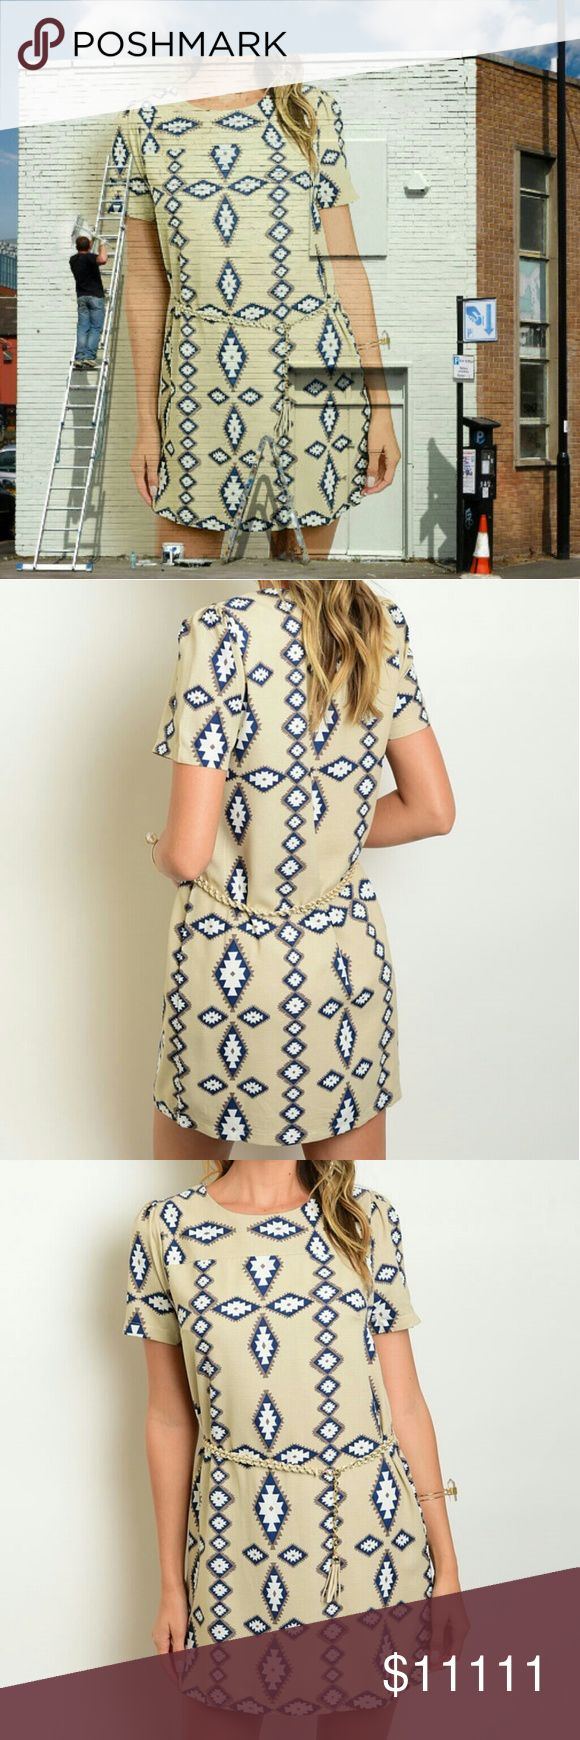 Tribal print dress Beautiful Short Sleeve Tribal Print Shift Dress, Featuring A Skinny Belt Accentuating The Waist And A Comfortable Fit That Can Be Worn Day Or Night. 100% polyester Tan, Blue, White  ✨S-bust laying flat is approx 16.5in and 31in from shoulder to bottom hem ✨M-bust laying flat is approx 17in and 32in from shoulder to bottom hem ✨L-bust laying flat is approx 18in and 33in from shoulder to bottom hem Dresses